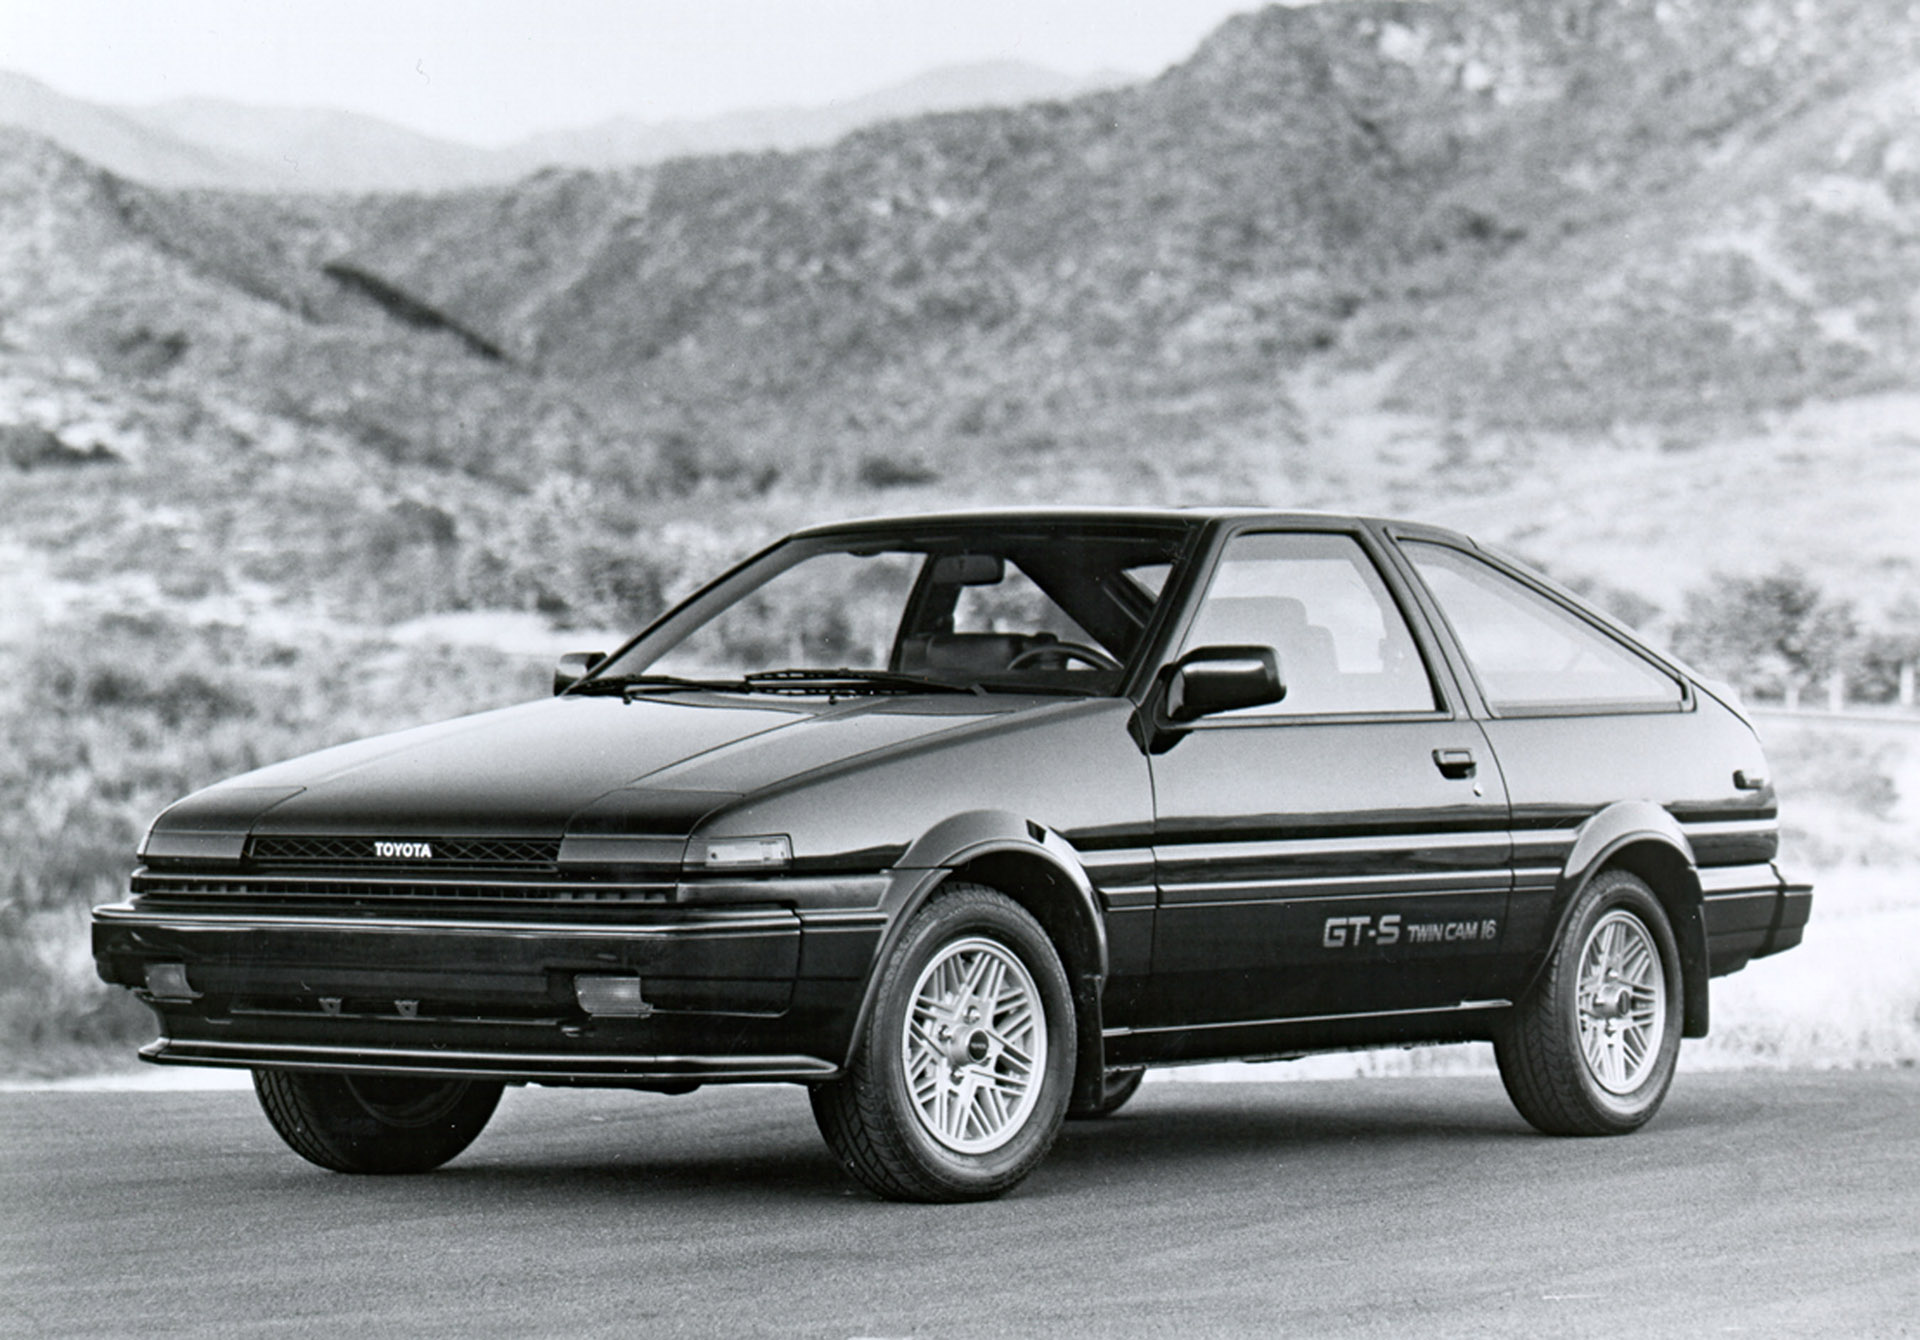 USA - The 5th Generation Corolla (1984 - 1987)